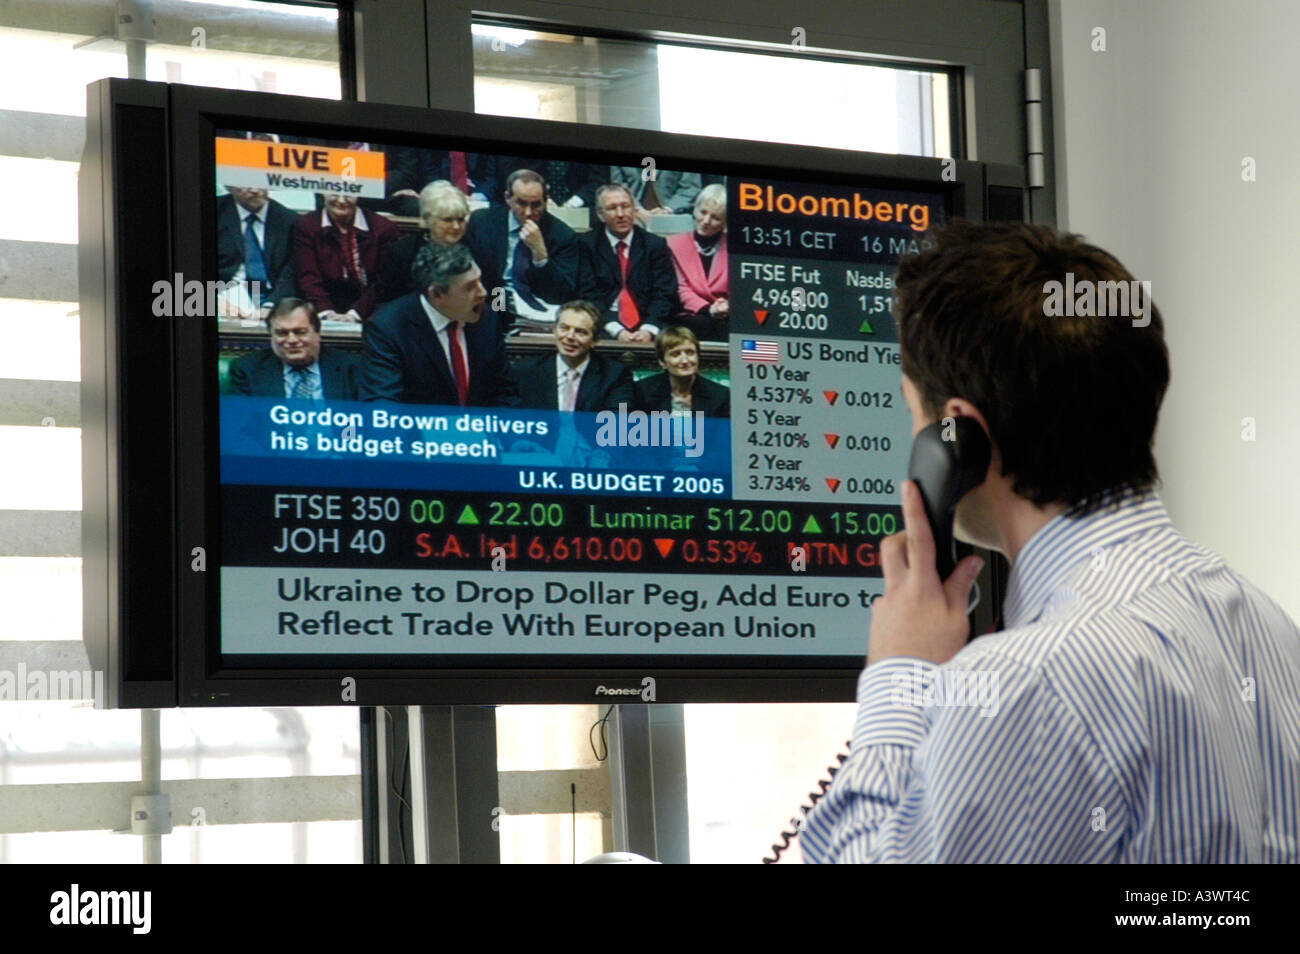 Currency trader watching Bloomberg business channel, London England Britain UK - Stock Image